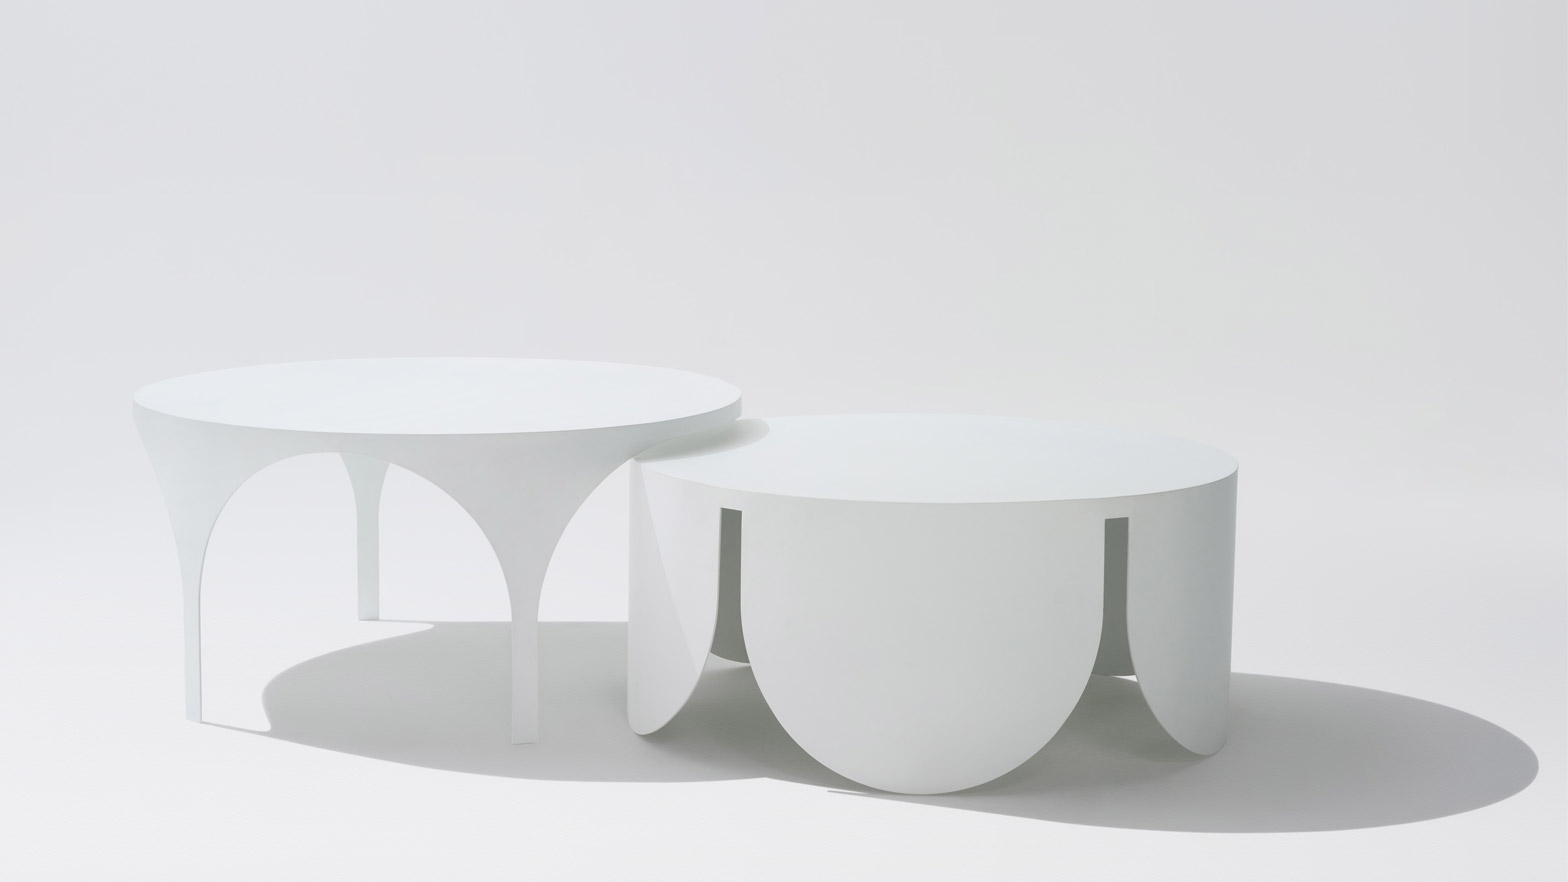 BoardGrove Architects designs two coffee tables with opposite shapes